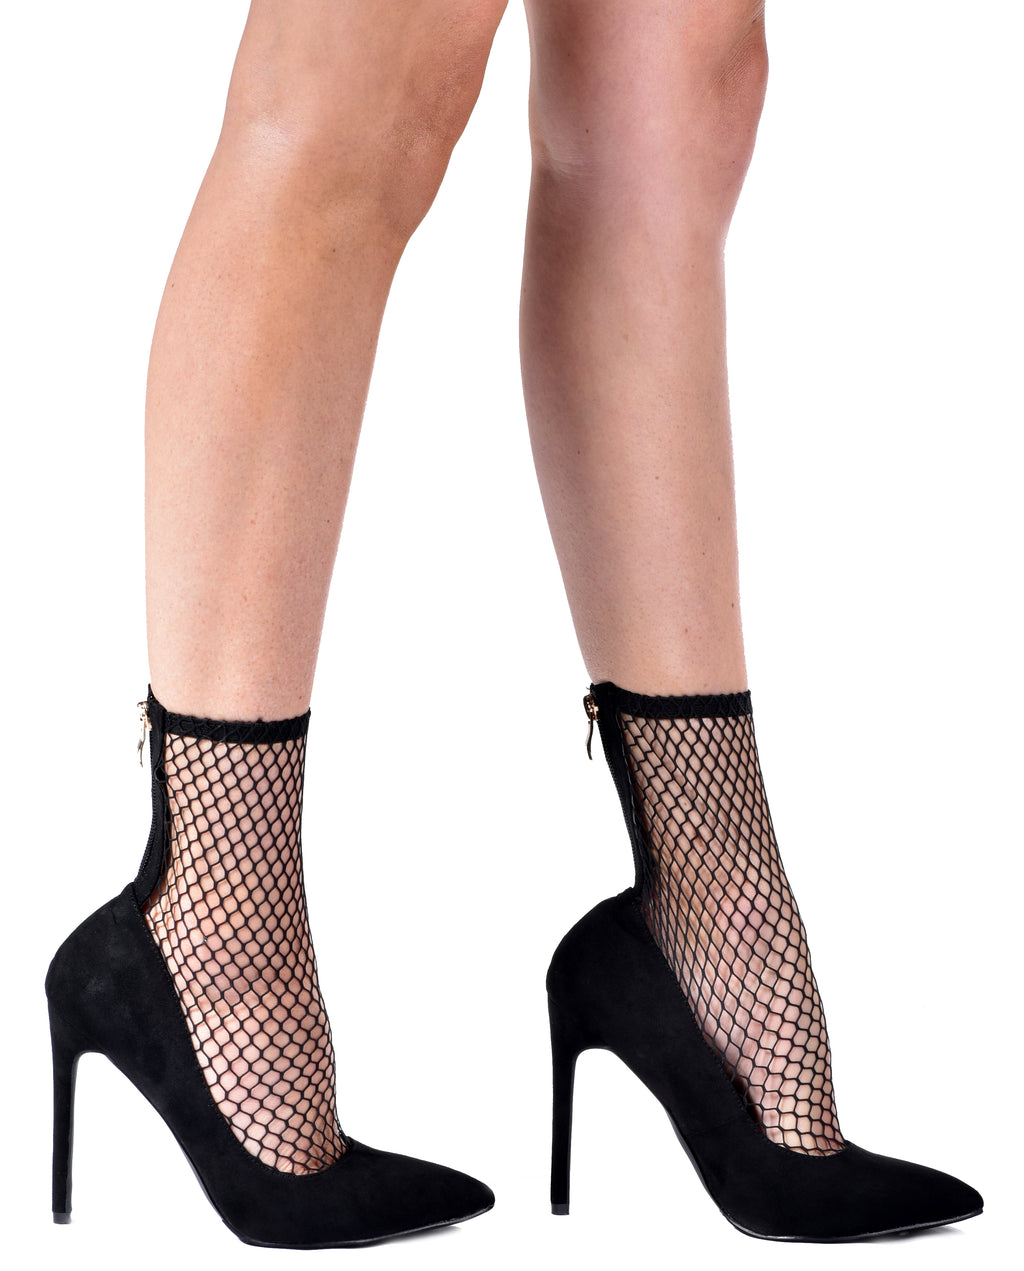 Stretchy Netted Mesh Sock Heels - Fashion You Up